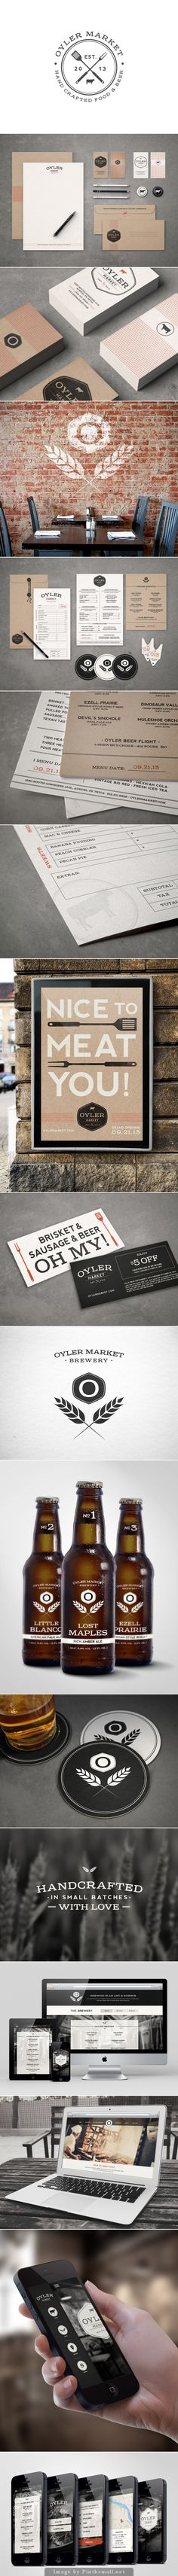 Lunchtime at Oyler Market #identity #packaging #branding curated by Packaging Diva PD - created via https://www.behance.net/gallery/Oyler-Market-Barbecue-Brewery/12801457